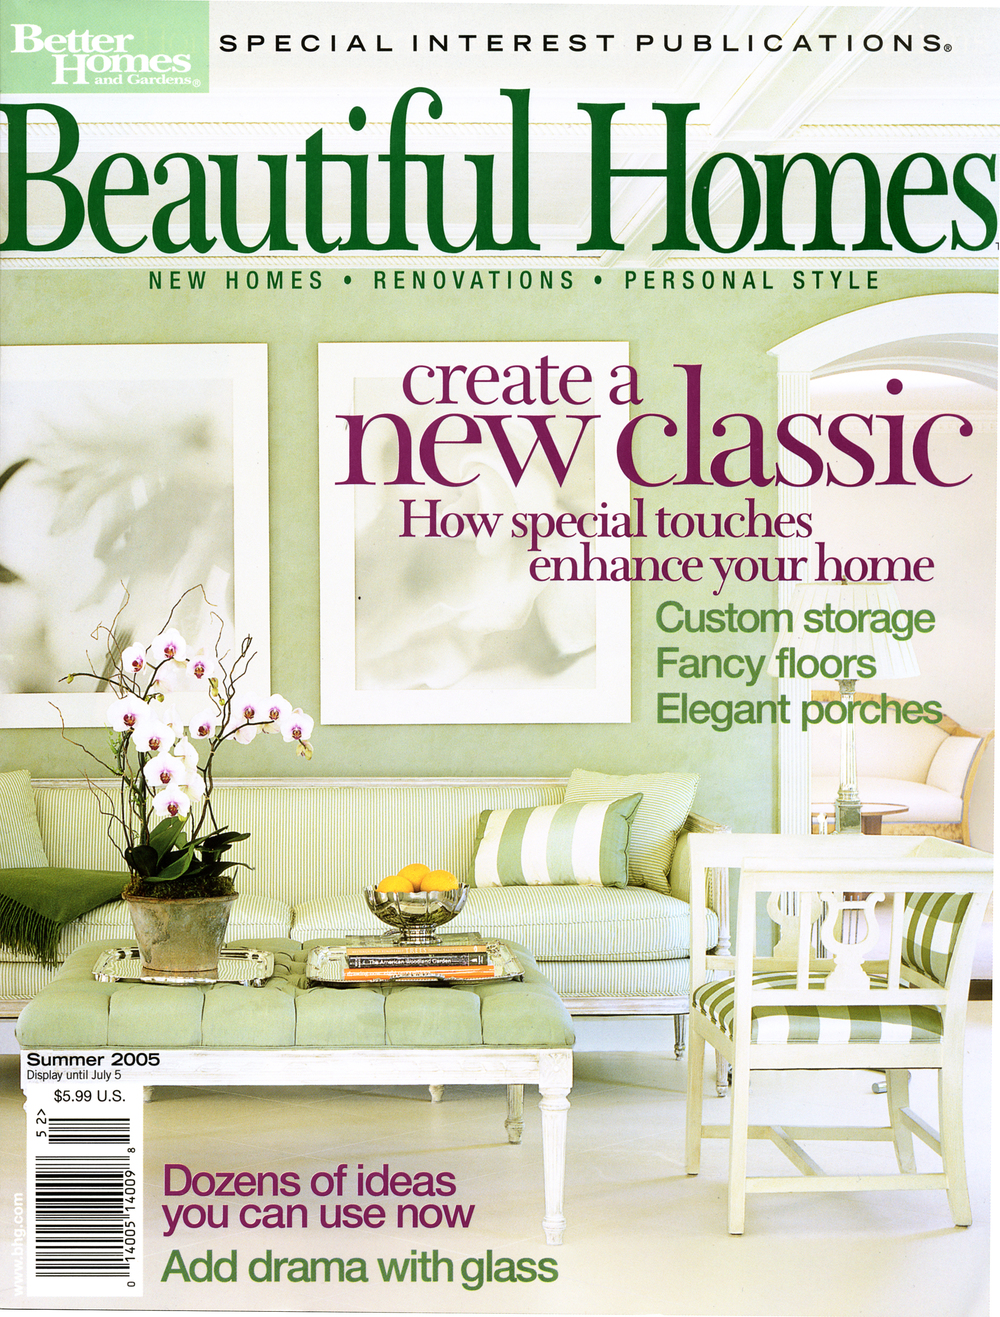 Better Homes & Gardens - Summer 2005